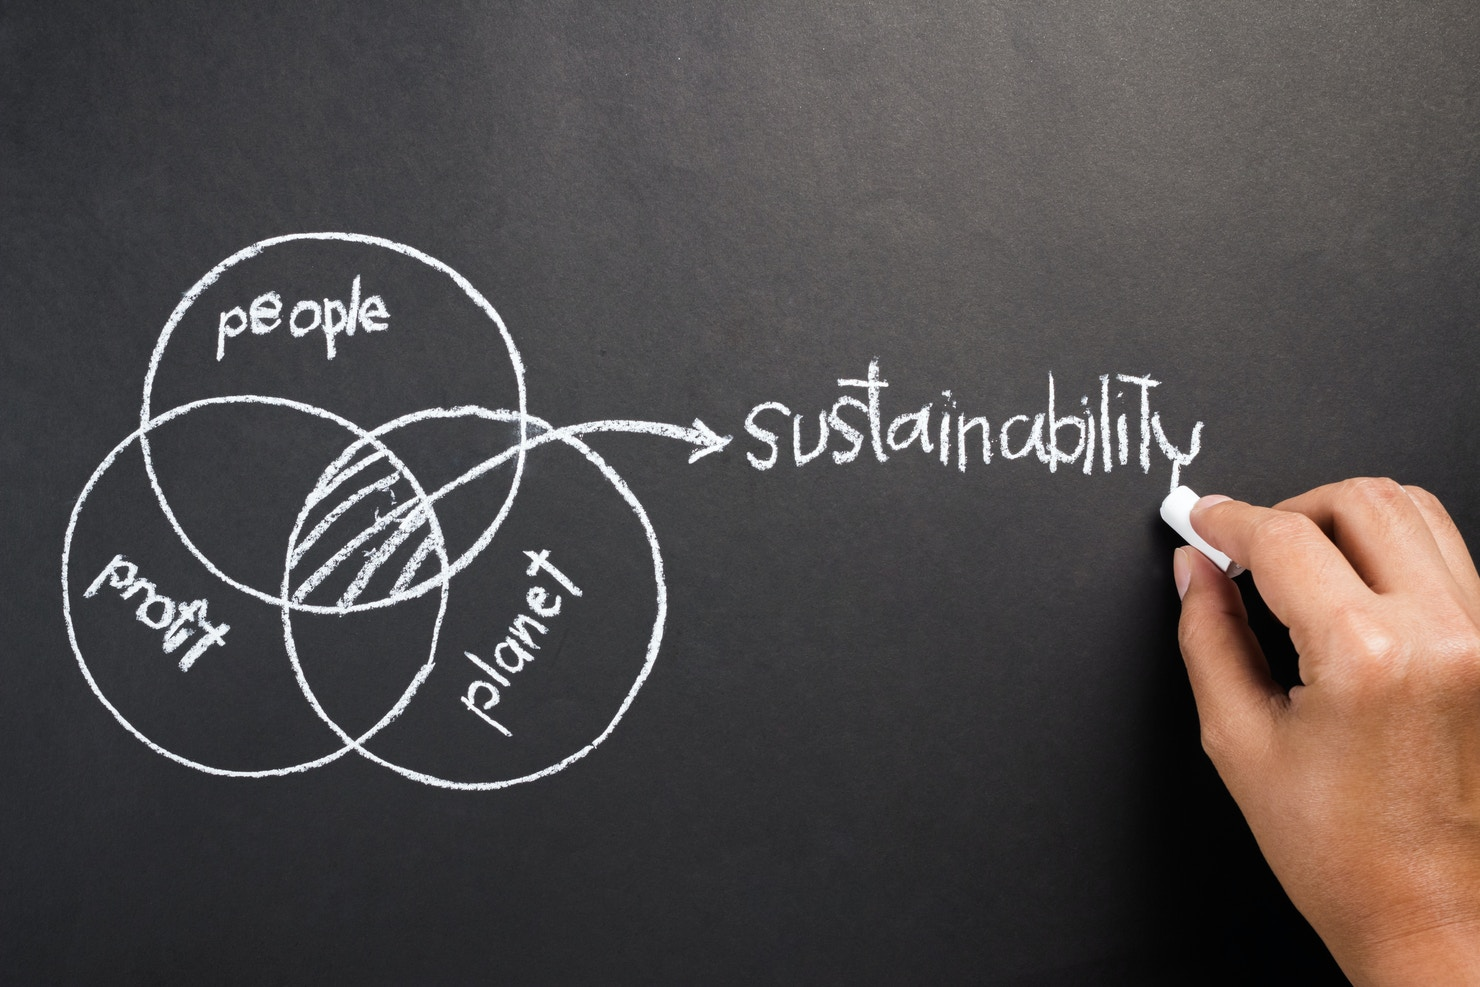 Buildng a new type of sustainability